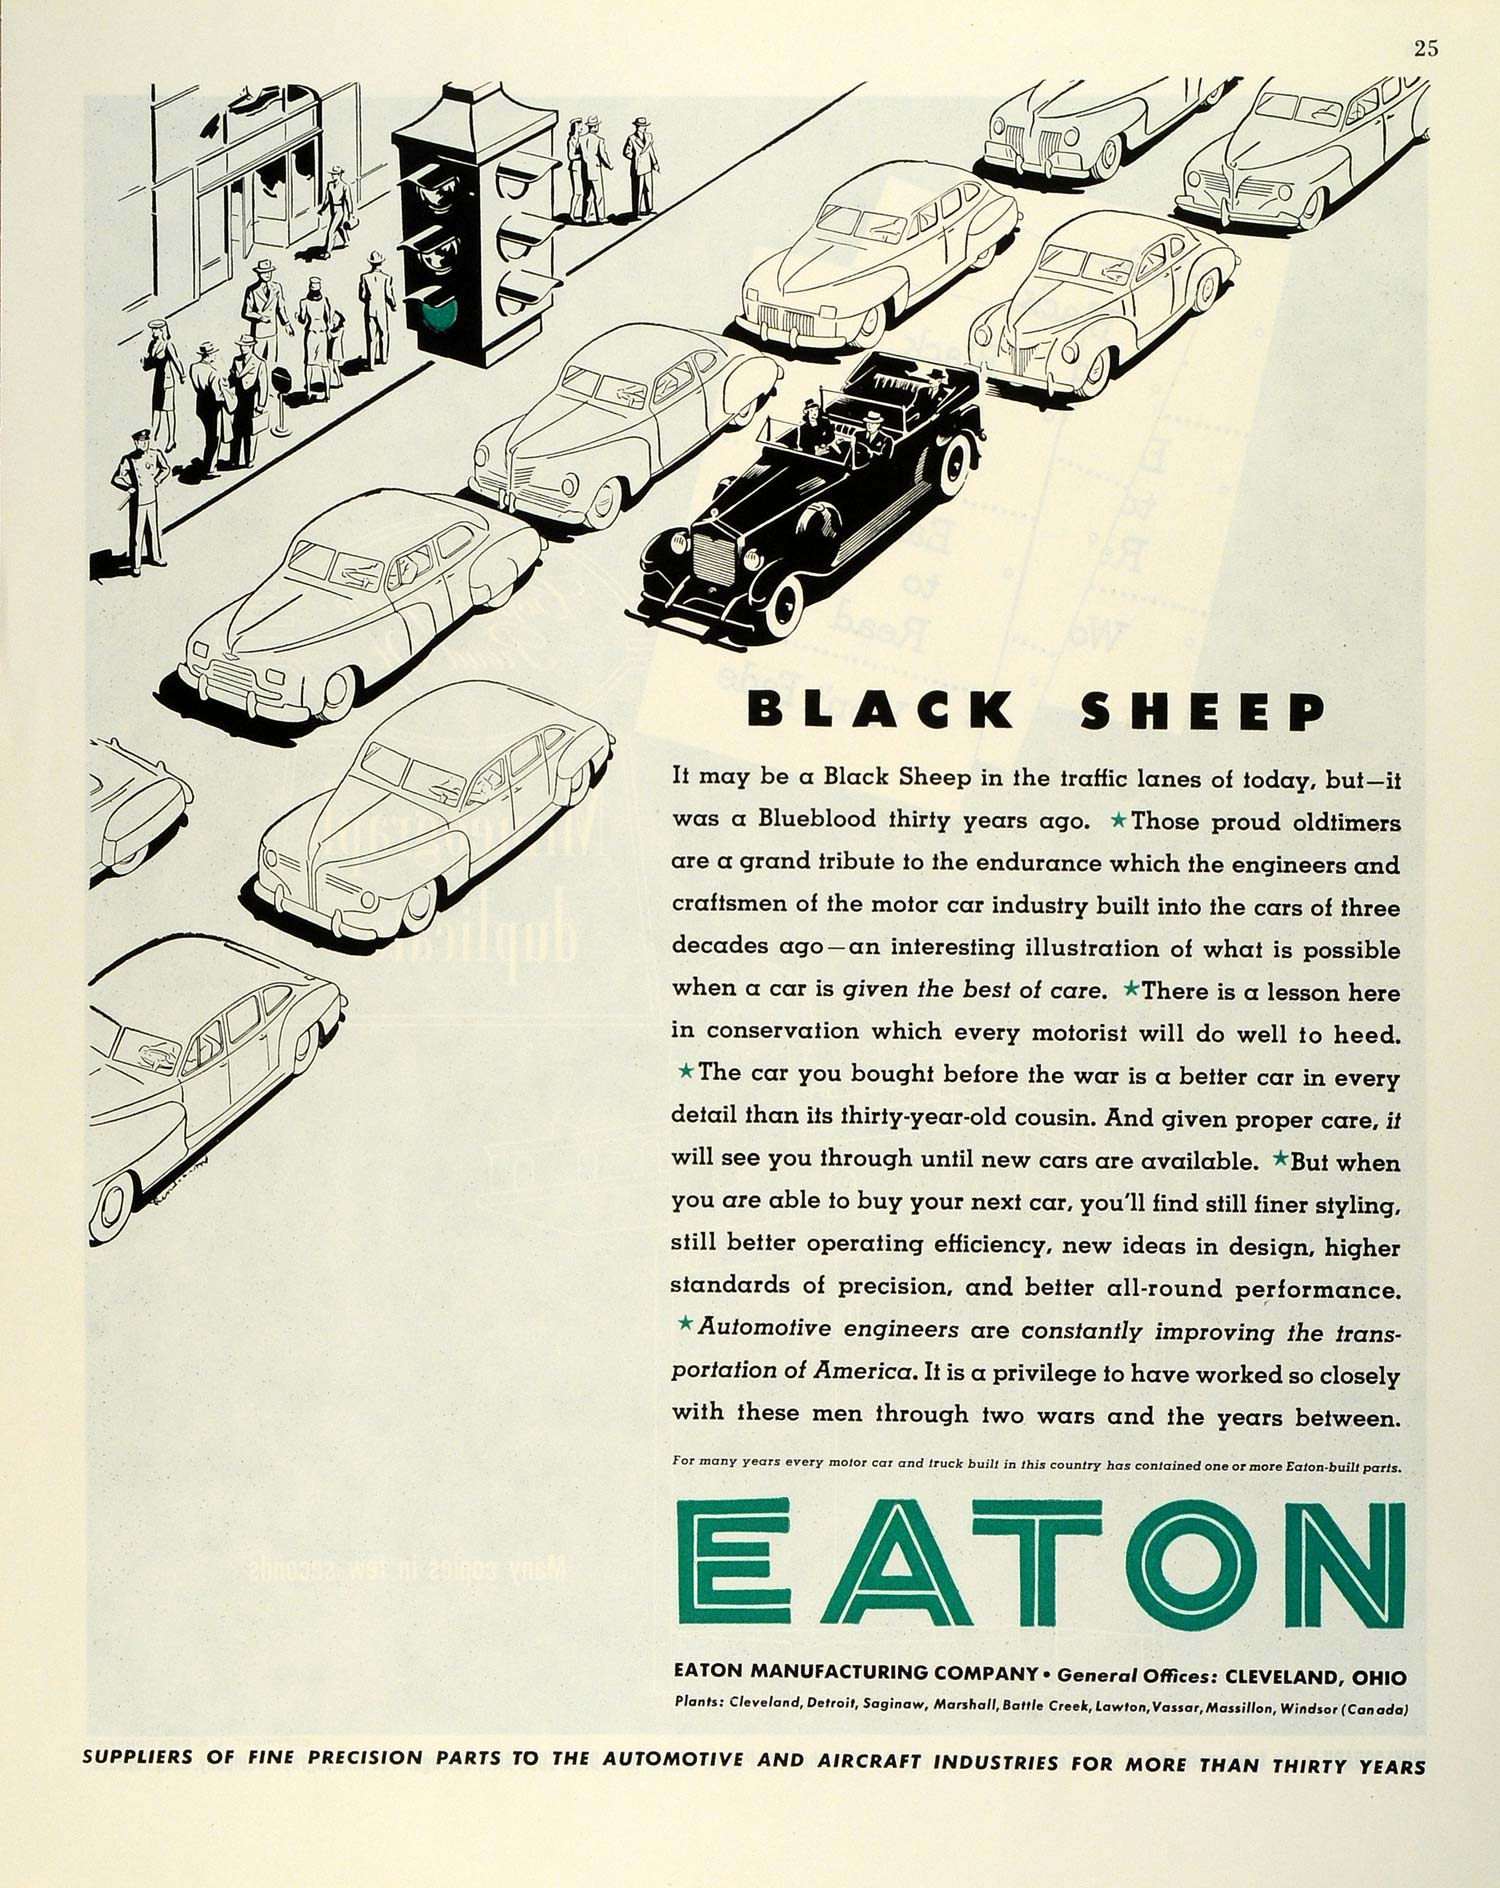 1945 Ad Eaton Manufacturing Co Black Sheep Car Traffic Lanes Precision Parts FZ8